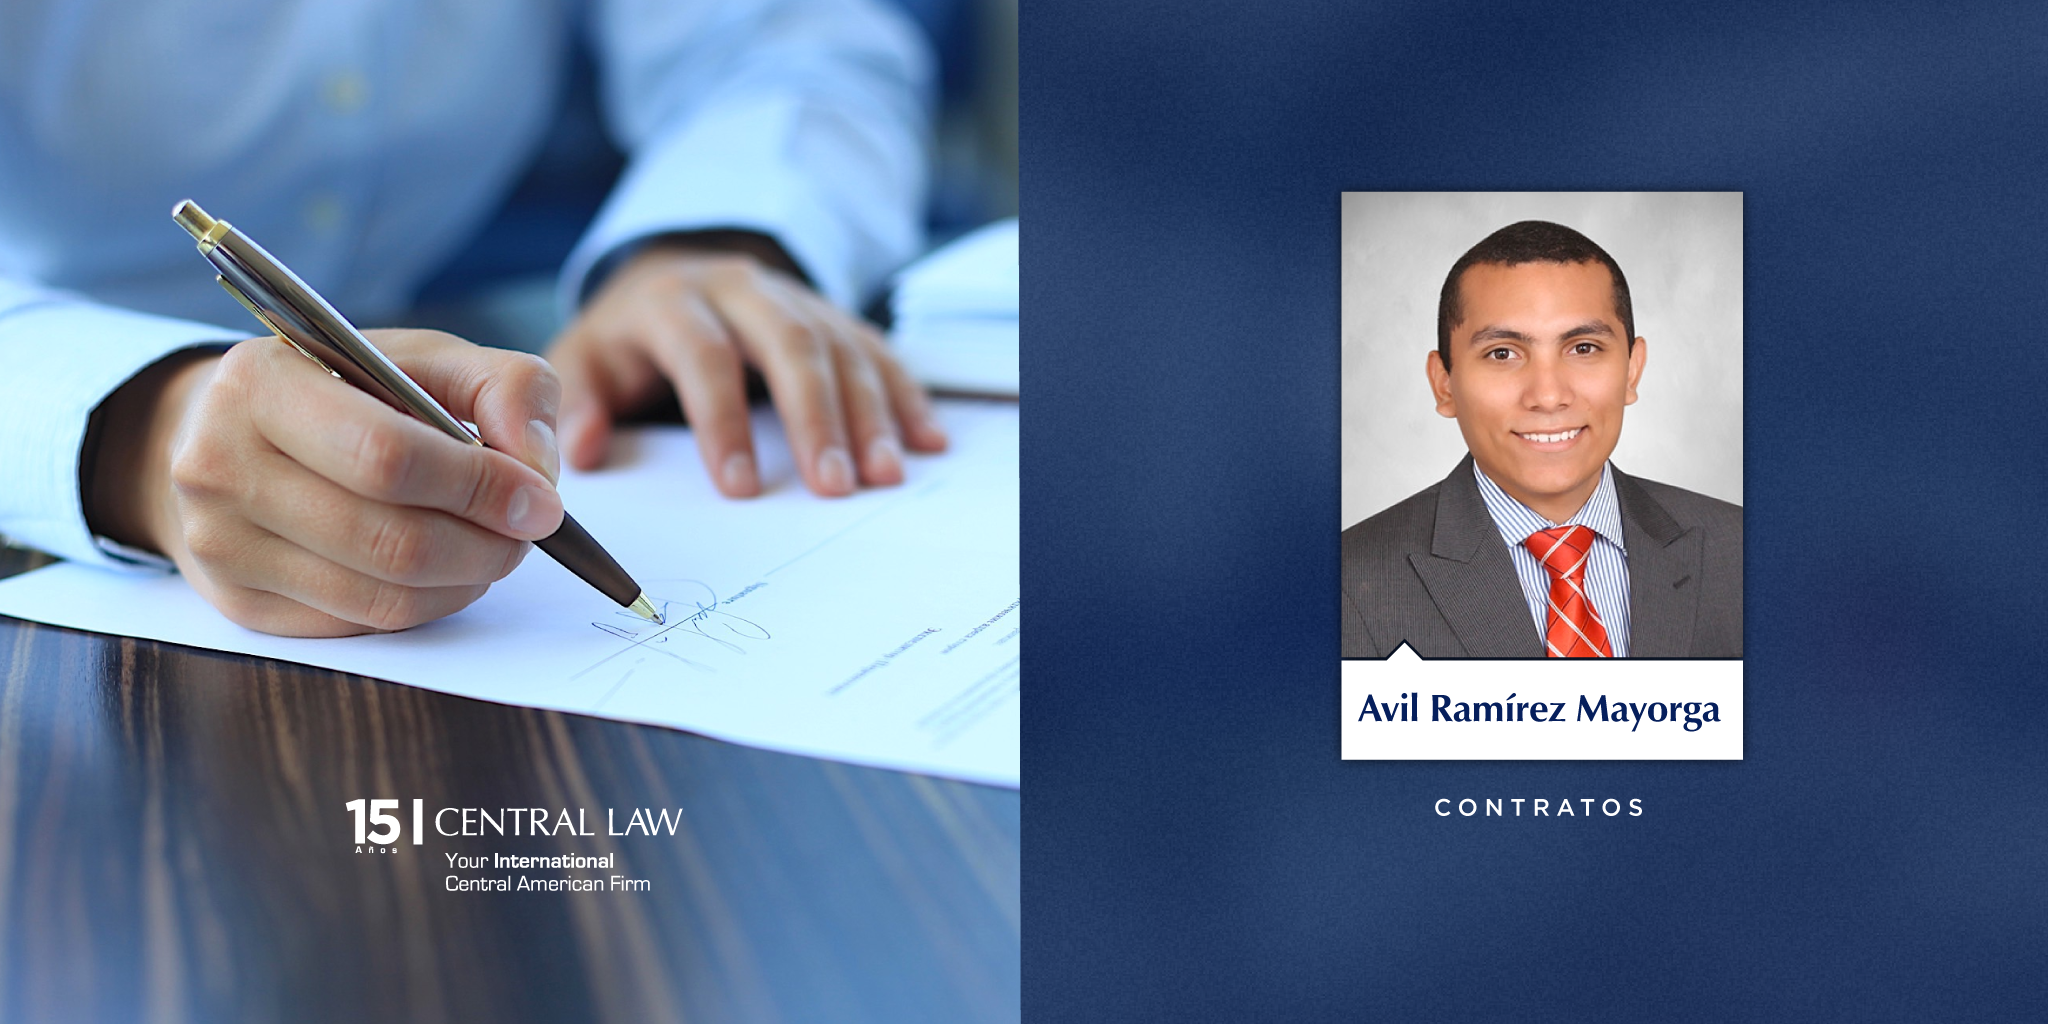 The change of contracting conditions and the contractual adjustment